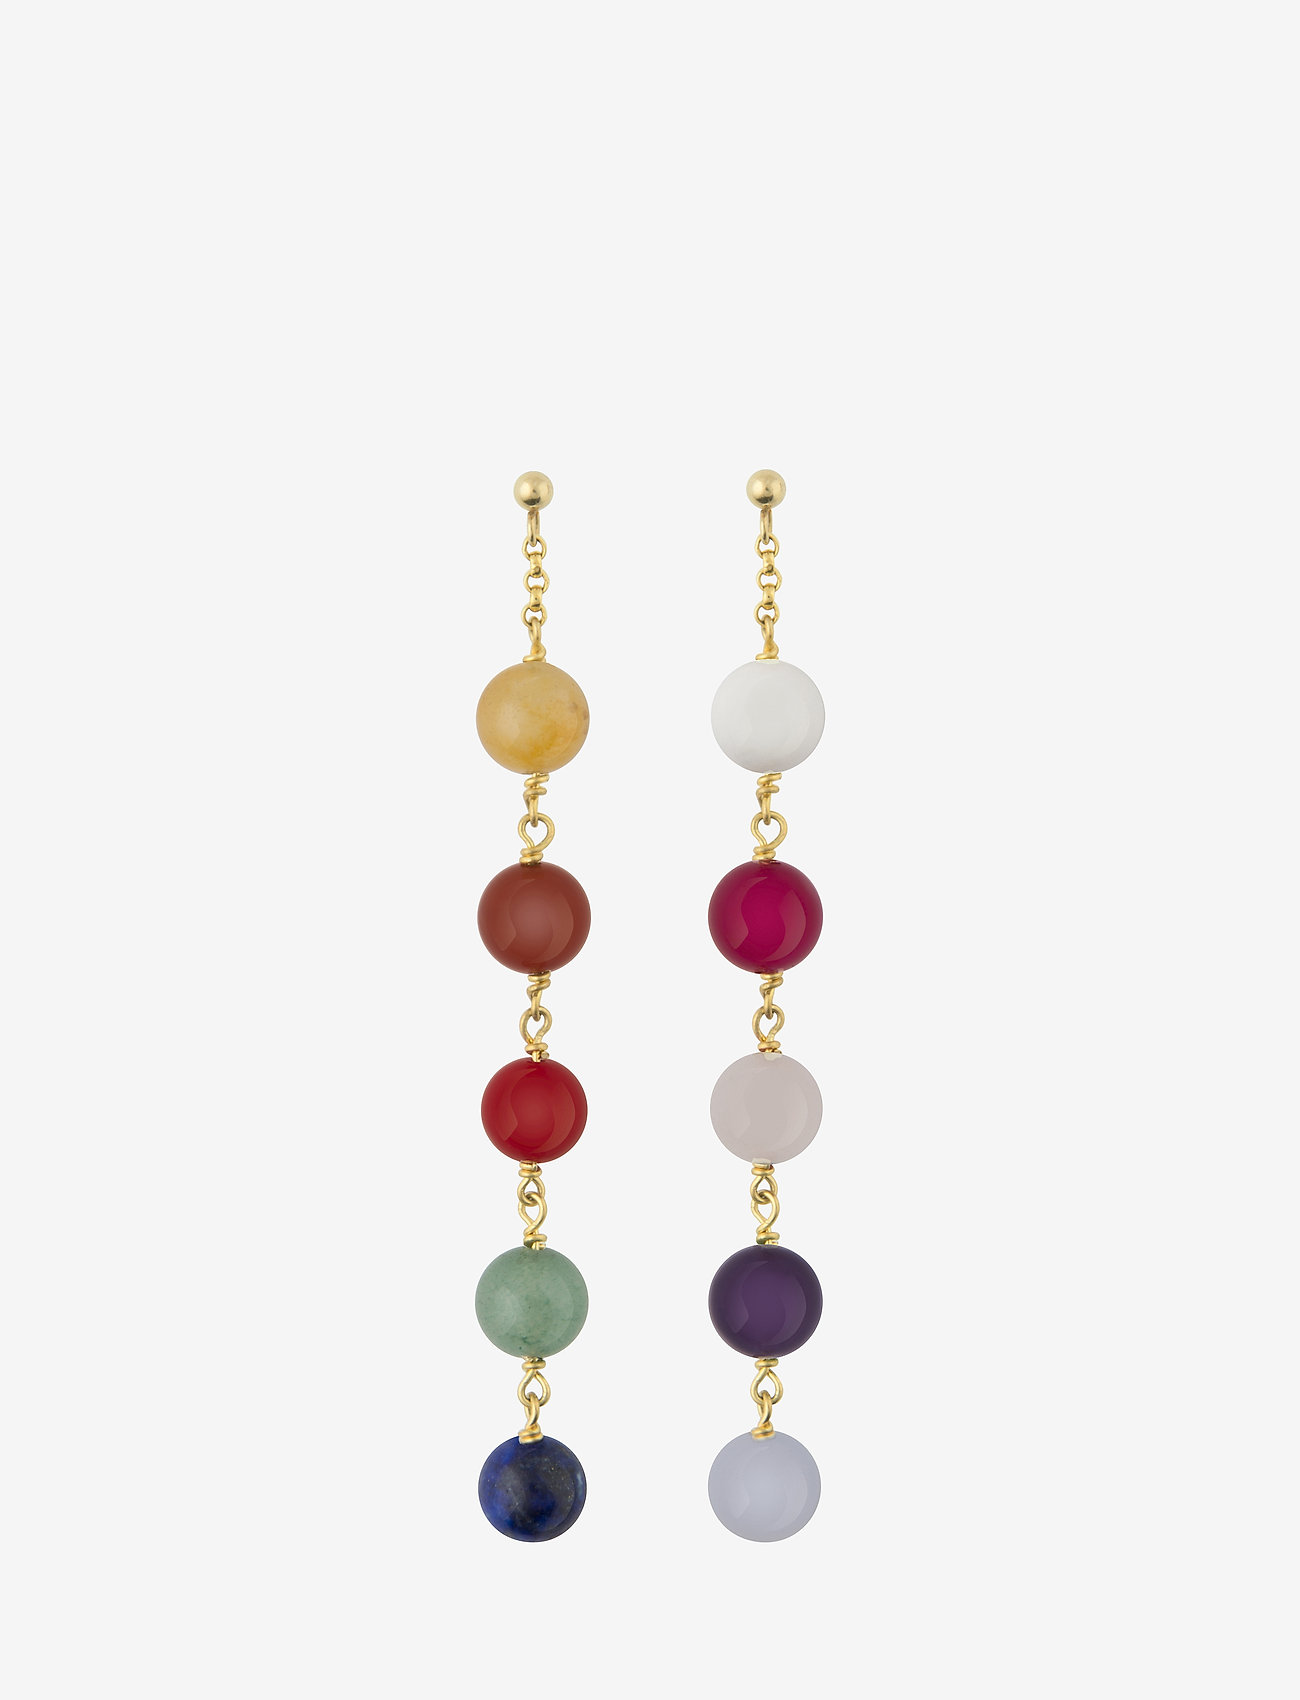 SOPHIE by SOPHIE - Childhood earrings - statement earrings - gold - 1